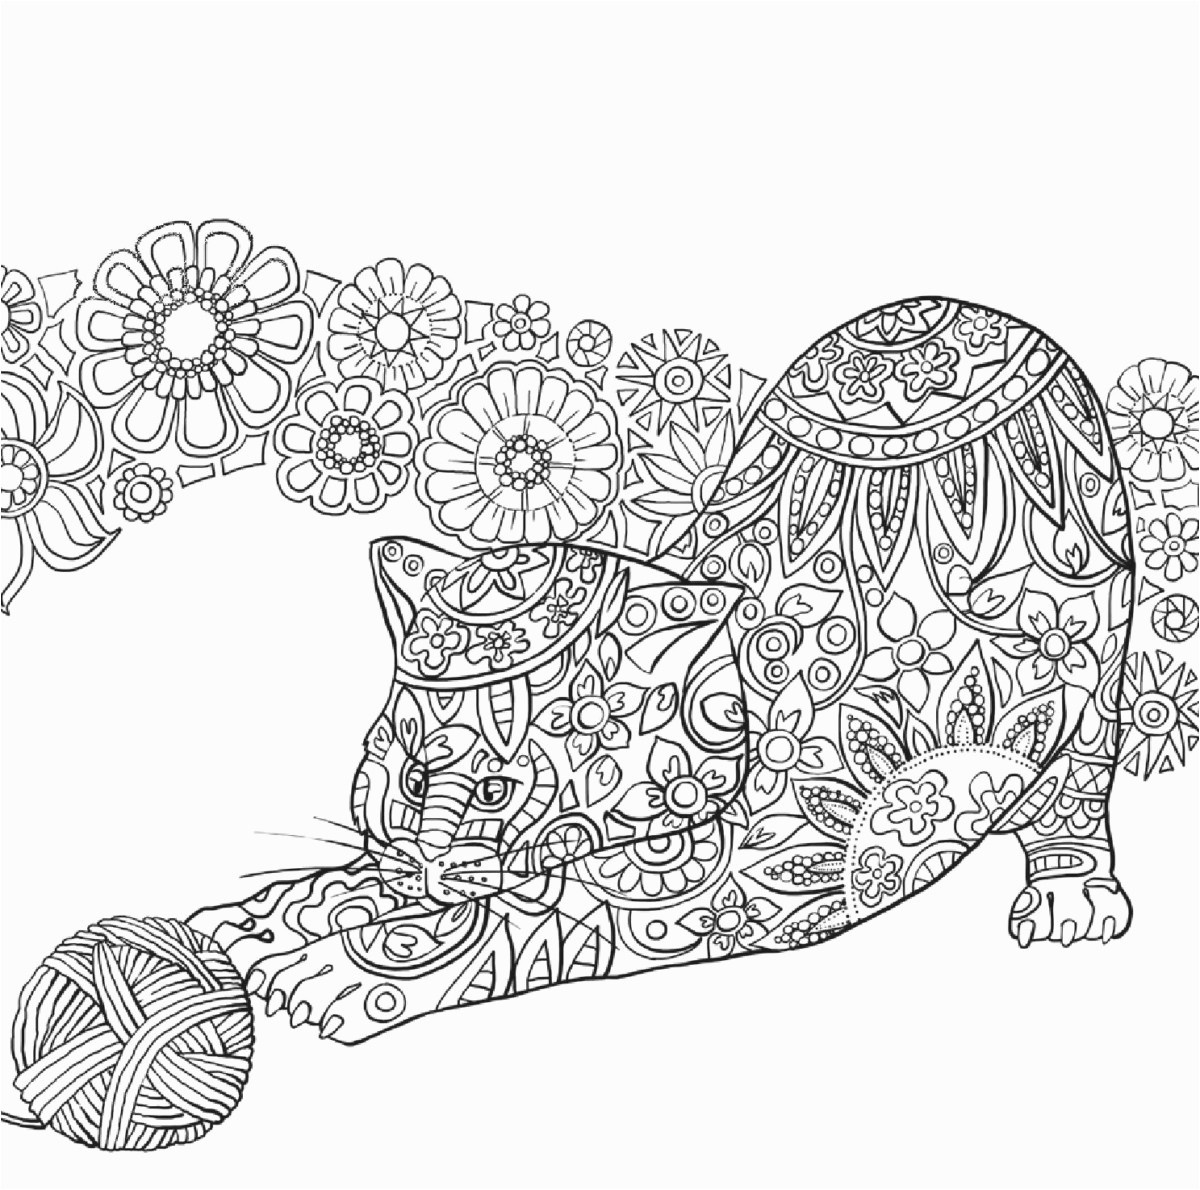 Tangled Printables Coloring Pages   Coloring Pages - Free Printable Zen Coloring Pages